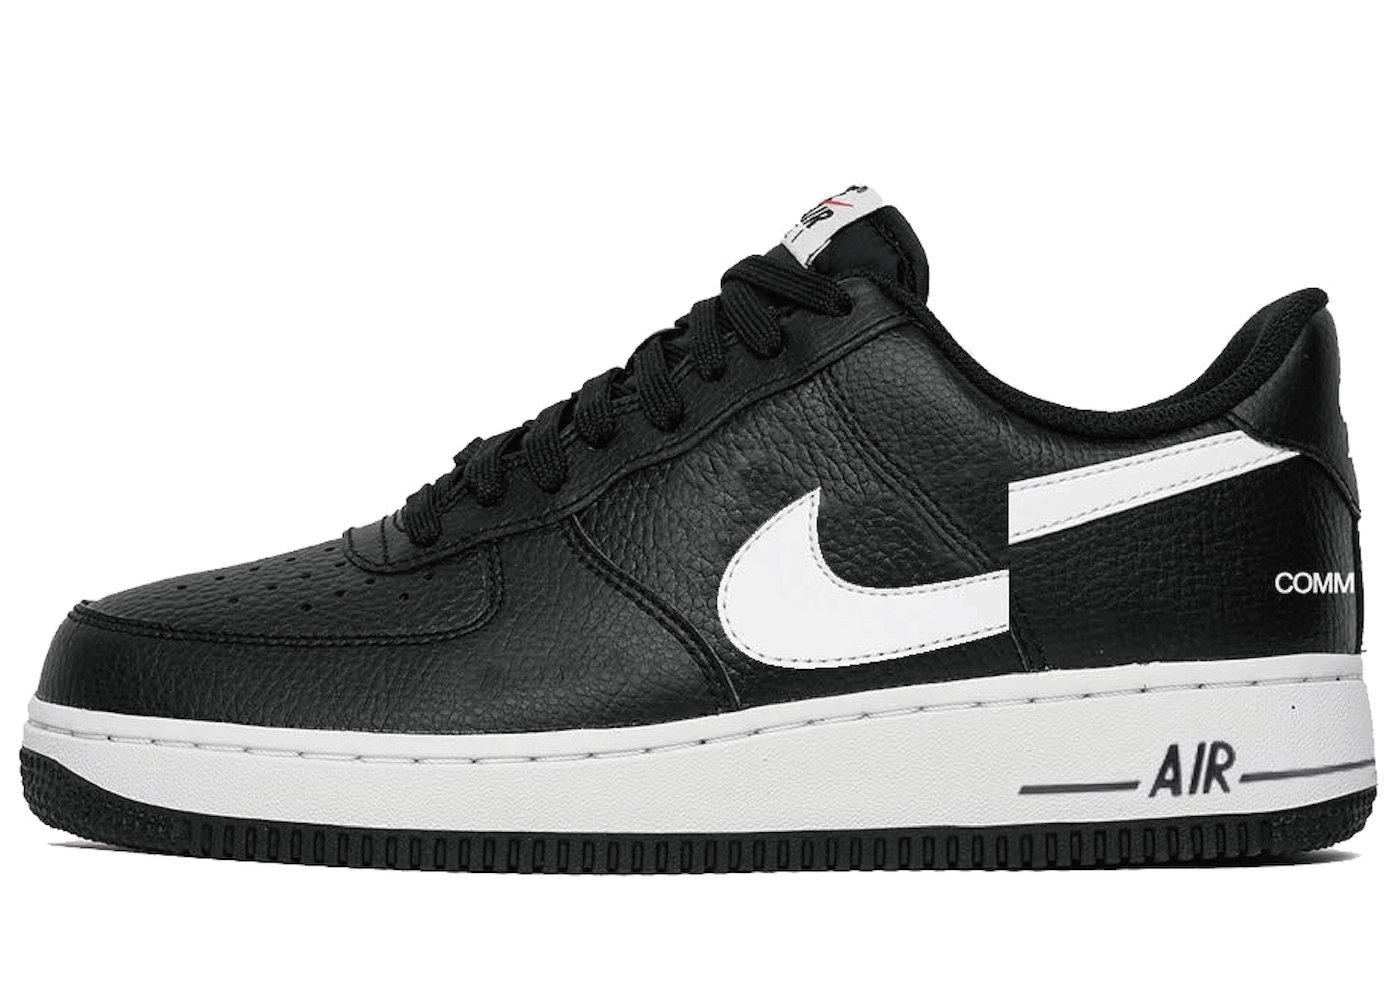 hot sales e59f9 babb4 Nike Air Force 1 Low Supreme x Comme des Garcons (2018)